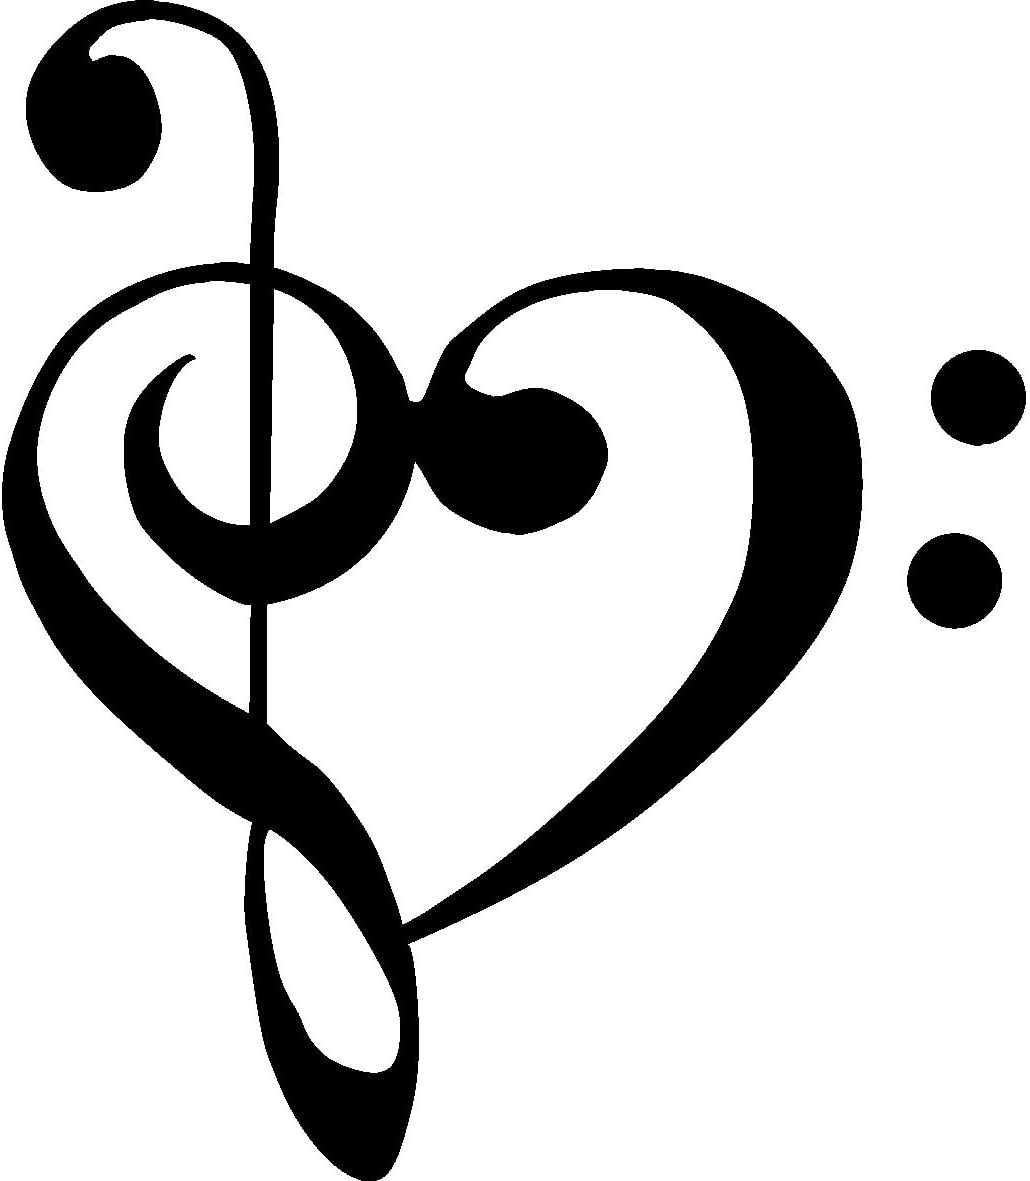 "TREBLE BASS CLEF HEART Love of music 3.5"" BLACK Vinyl Decal Window Sticker for Laptop, Ipad, Window, Wall, Car, Truck, Motorcycle"